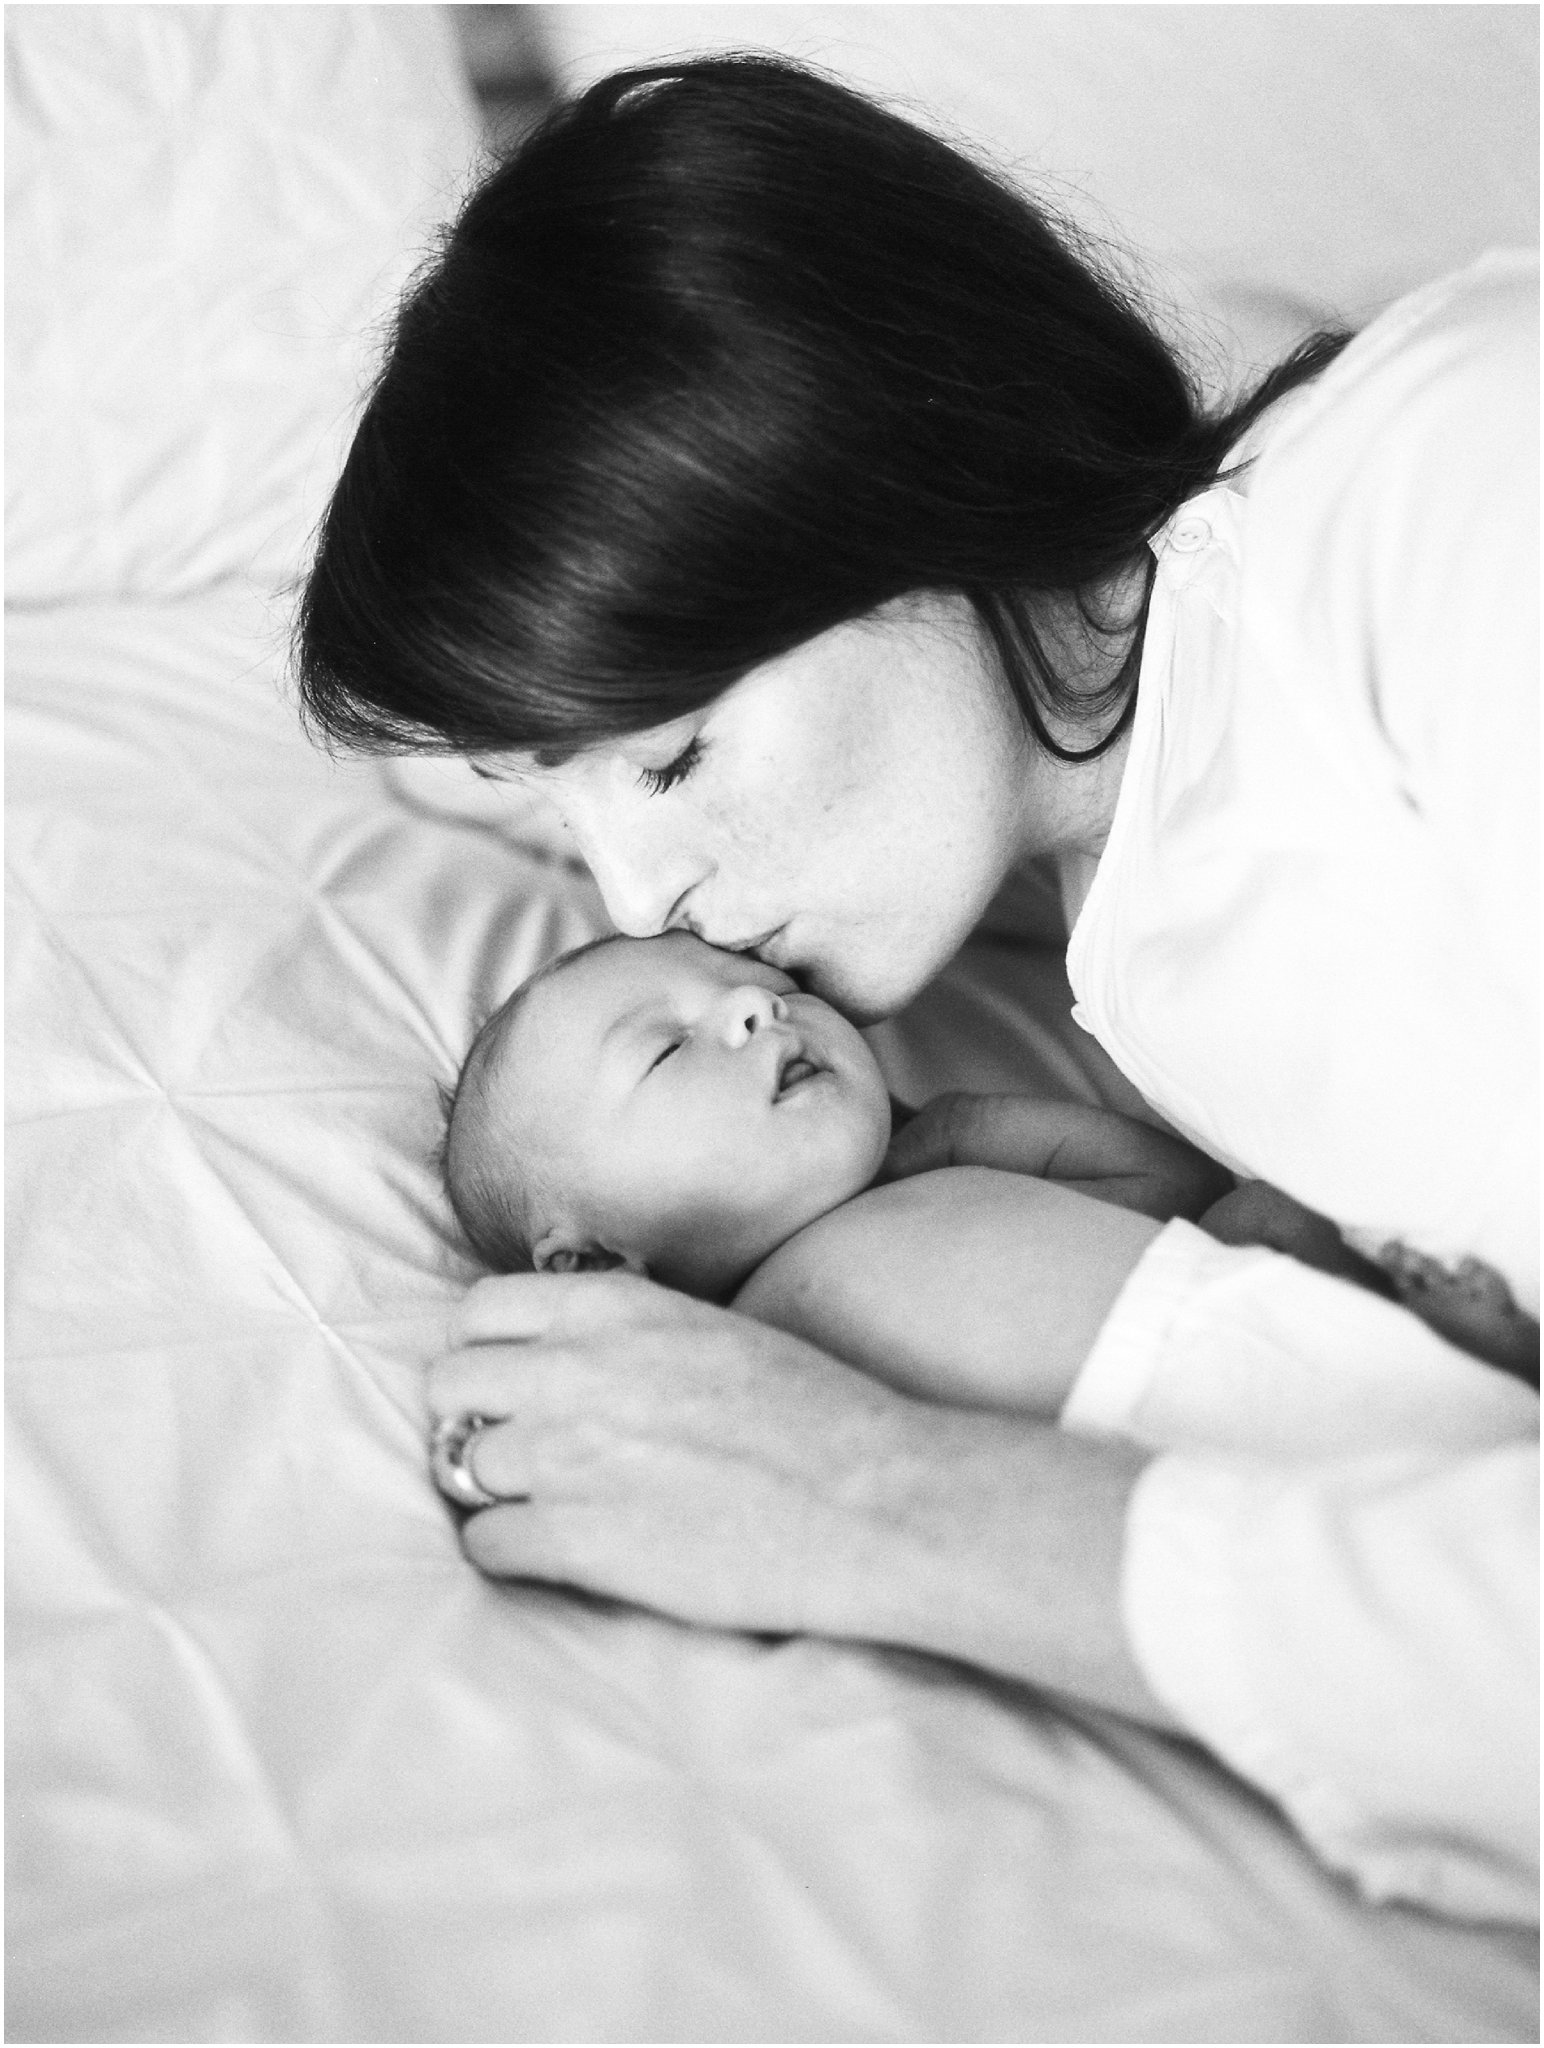 charlottesville in-home newborn session on film by charlottesville newborn & family photographer, amy nicole photography_0013